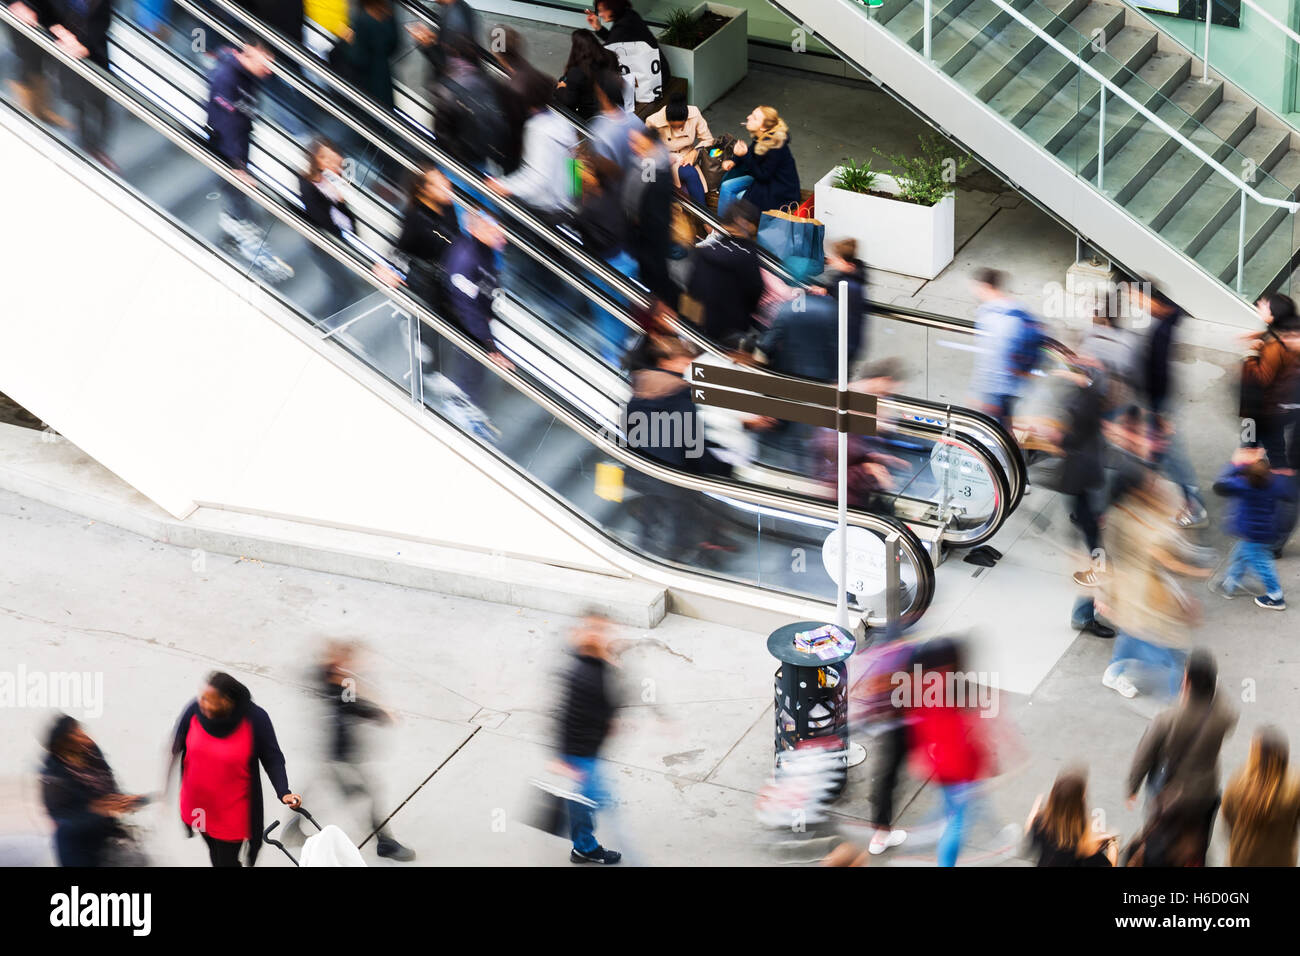 people on escalator. stock photo - escalator with a crowd of people in motion blur at shopping mall on